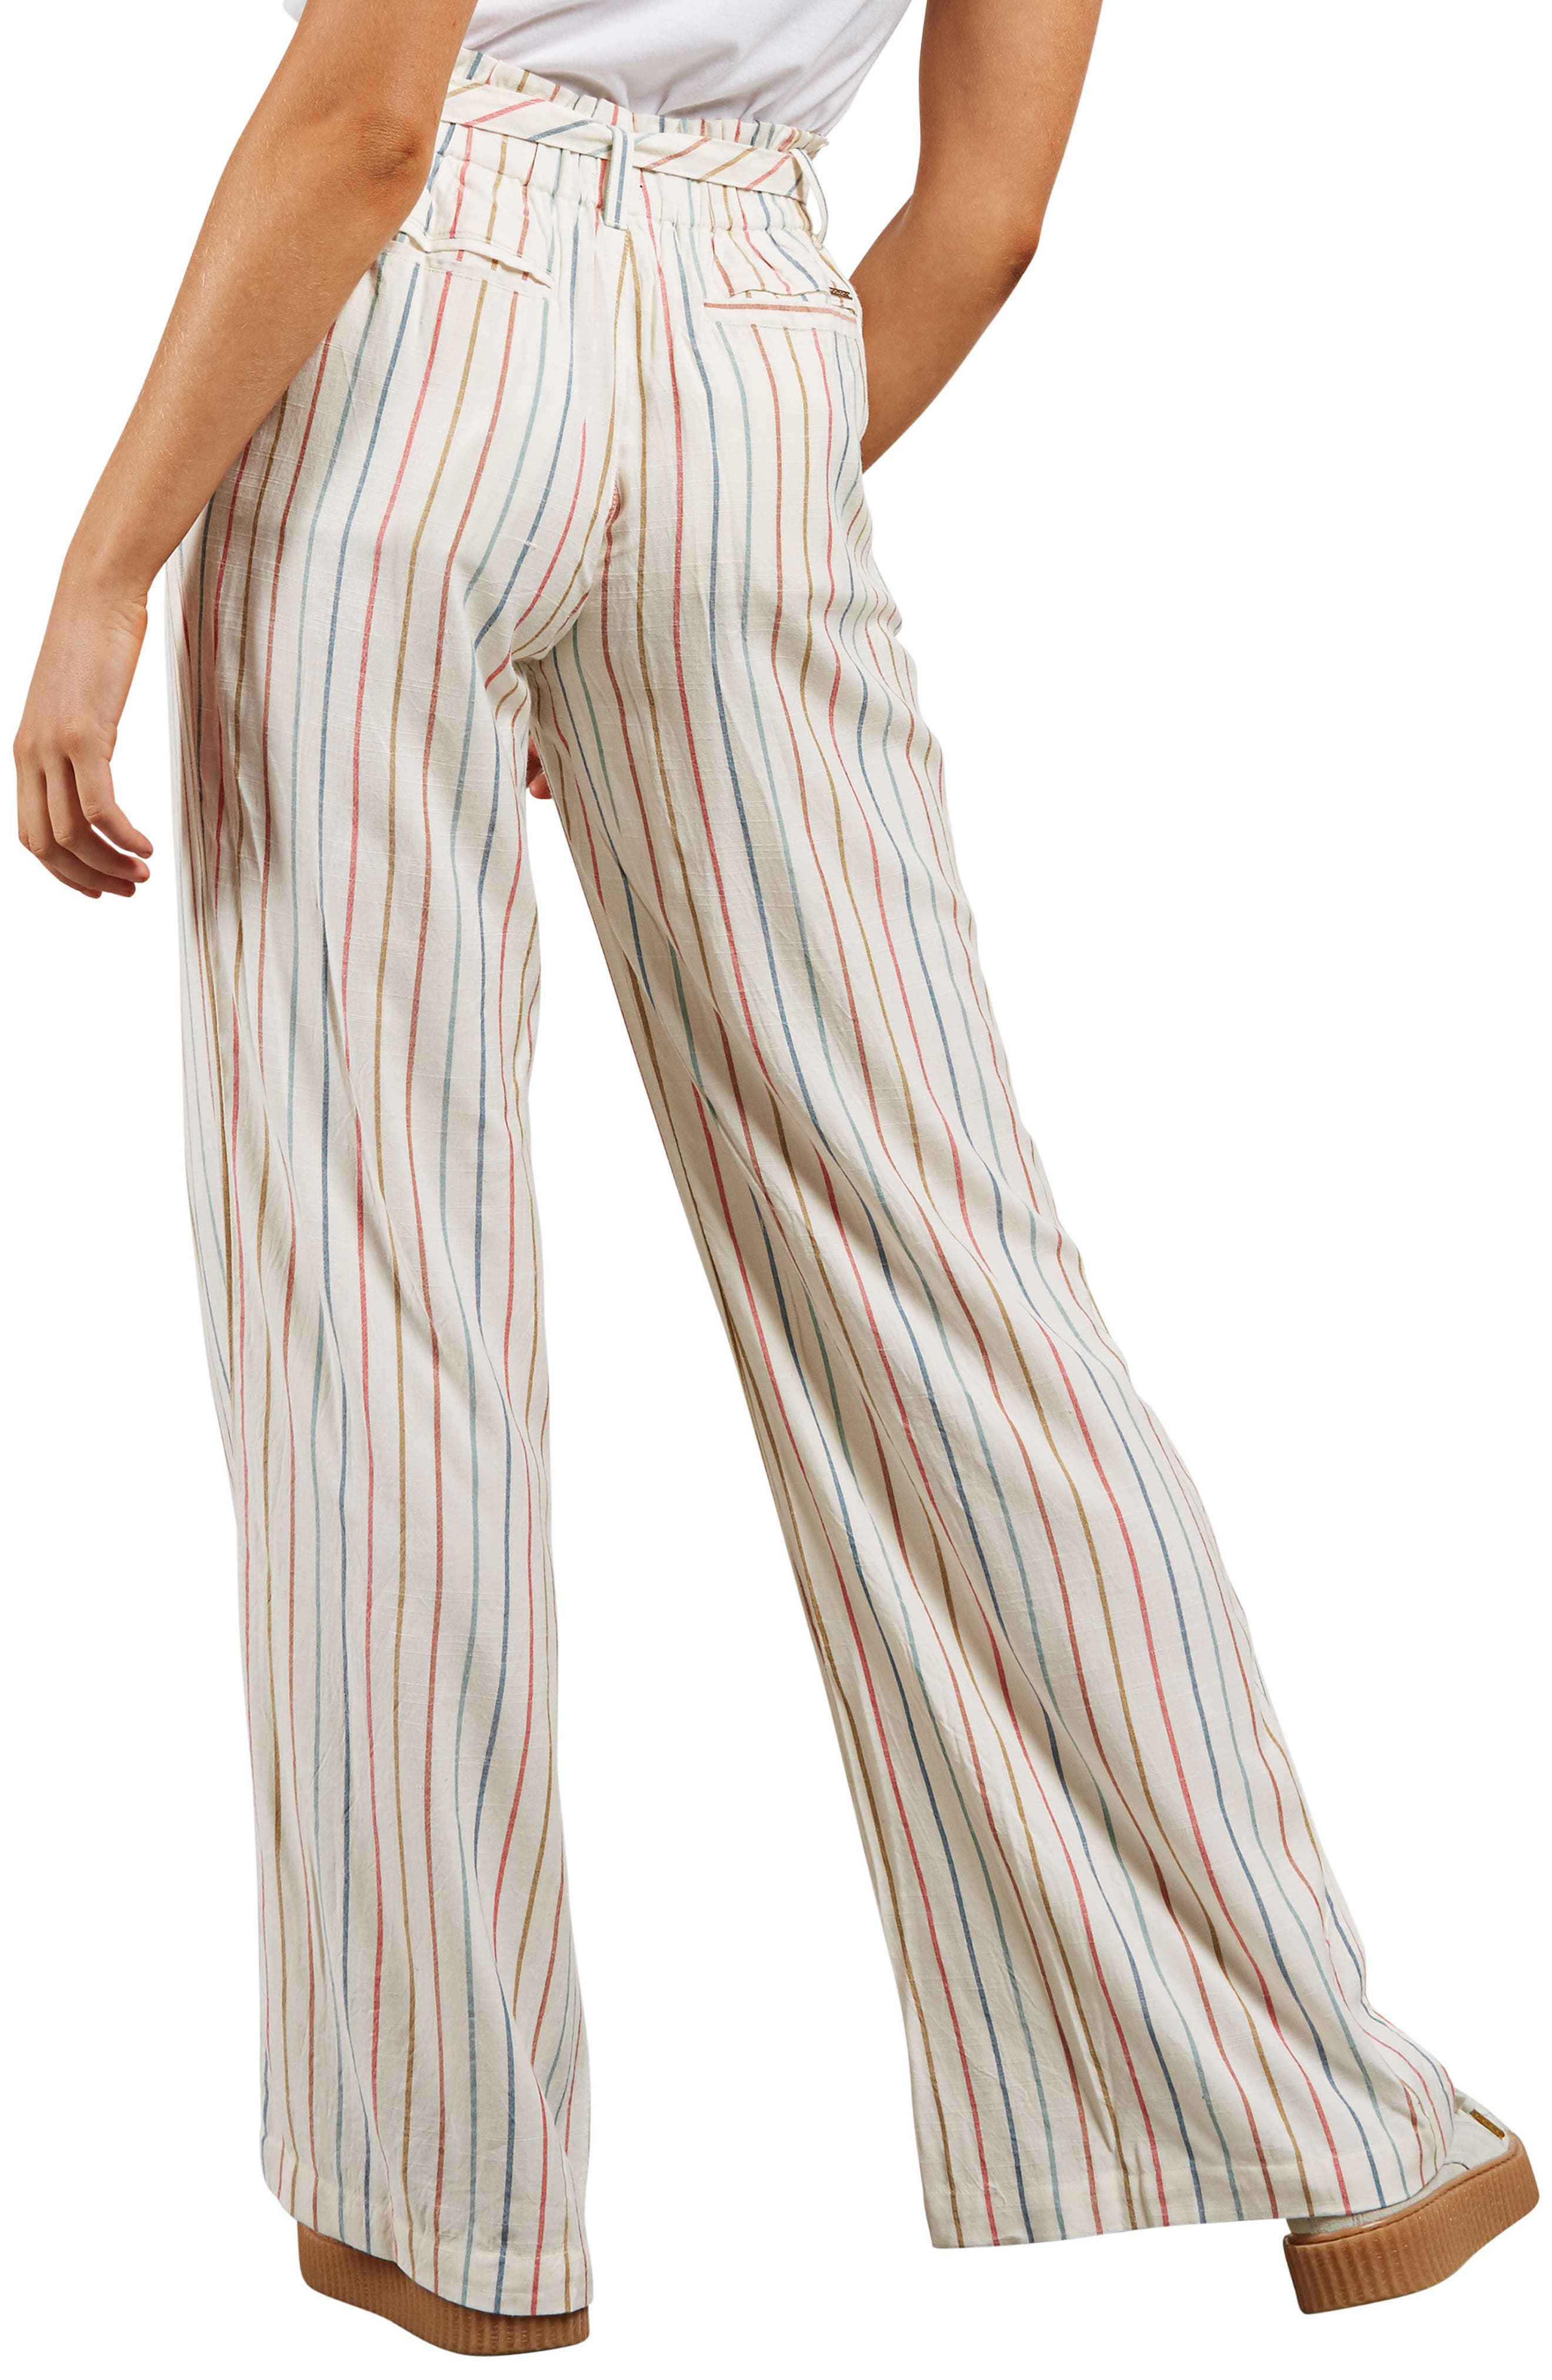 Need Now Stripe Trousers,                             Alternate thumbnail 2, color,                             Multi